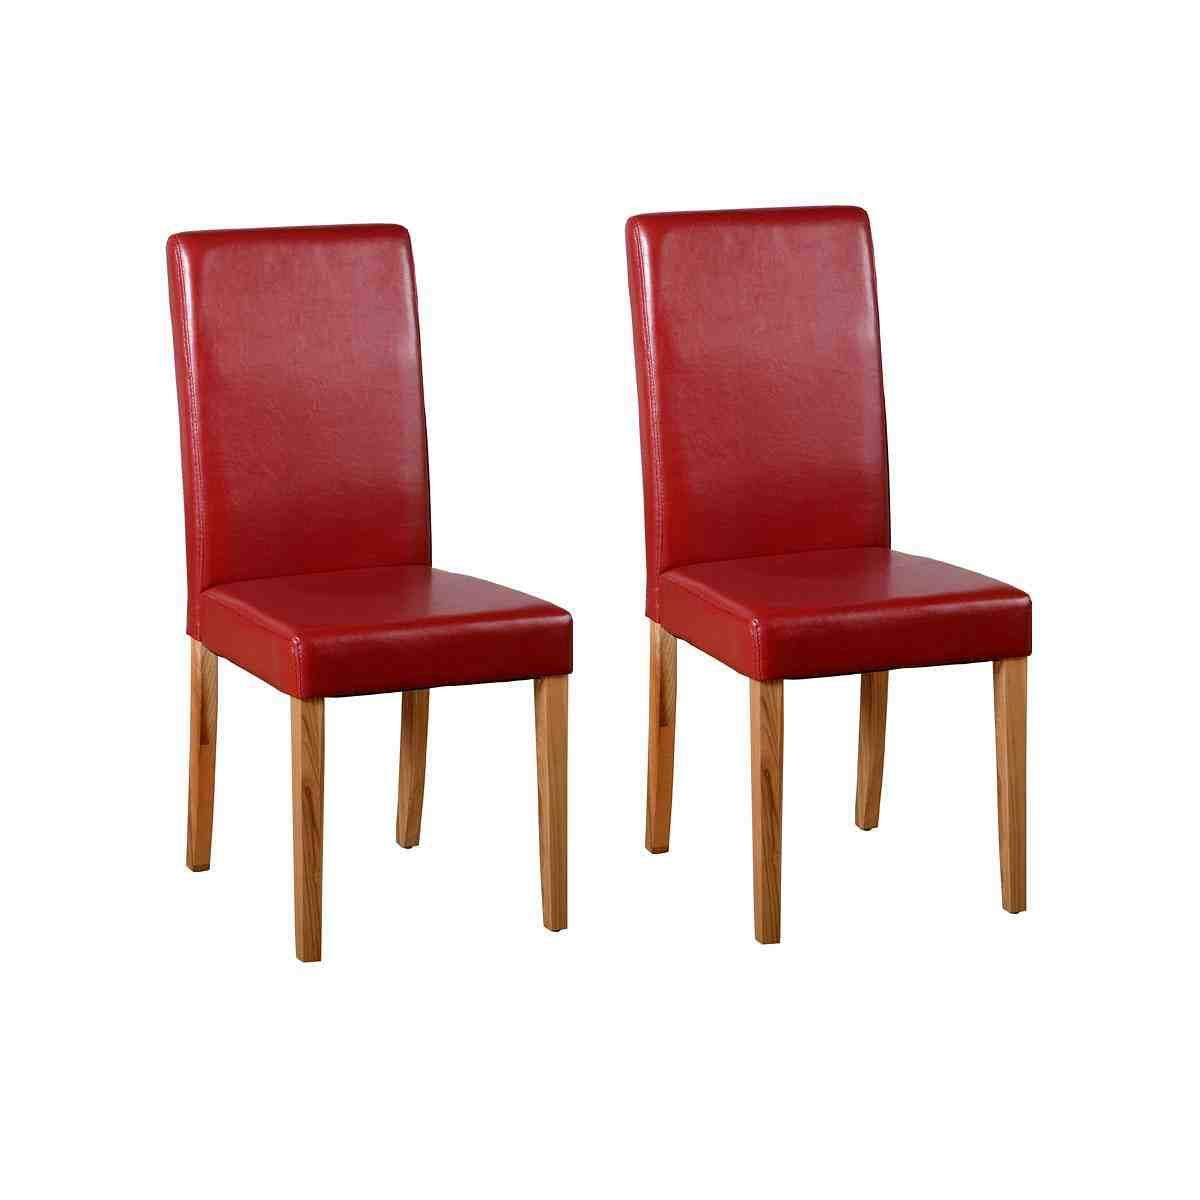 Red Leather Dining Room Chairs: Red Leather Dining Chairs